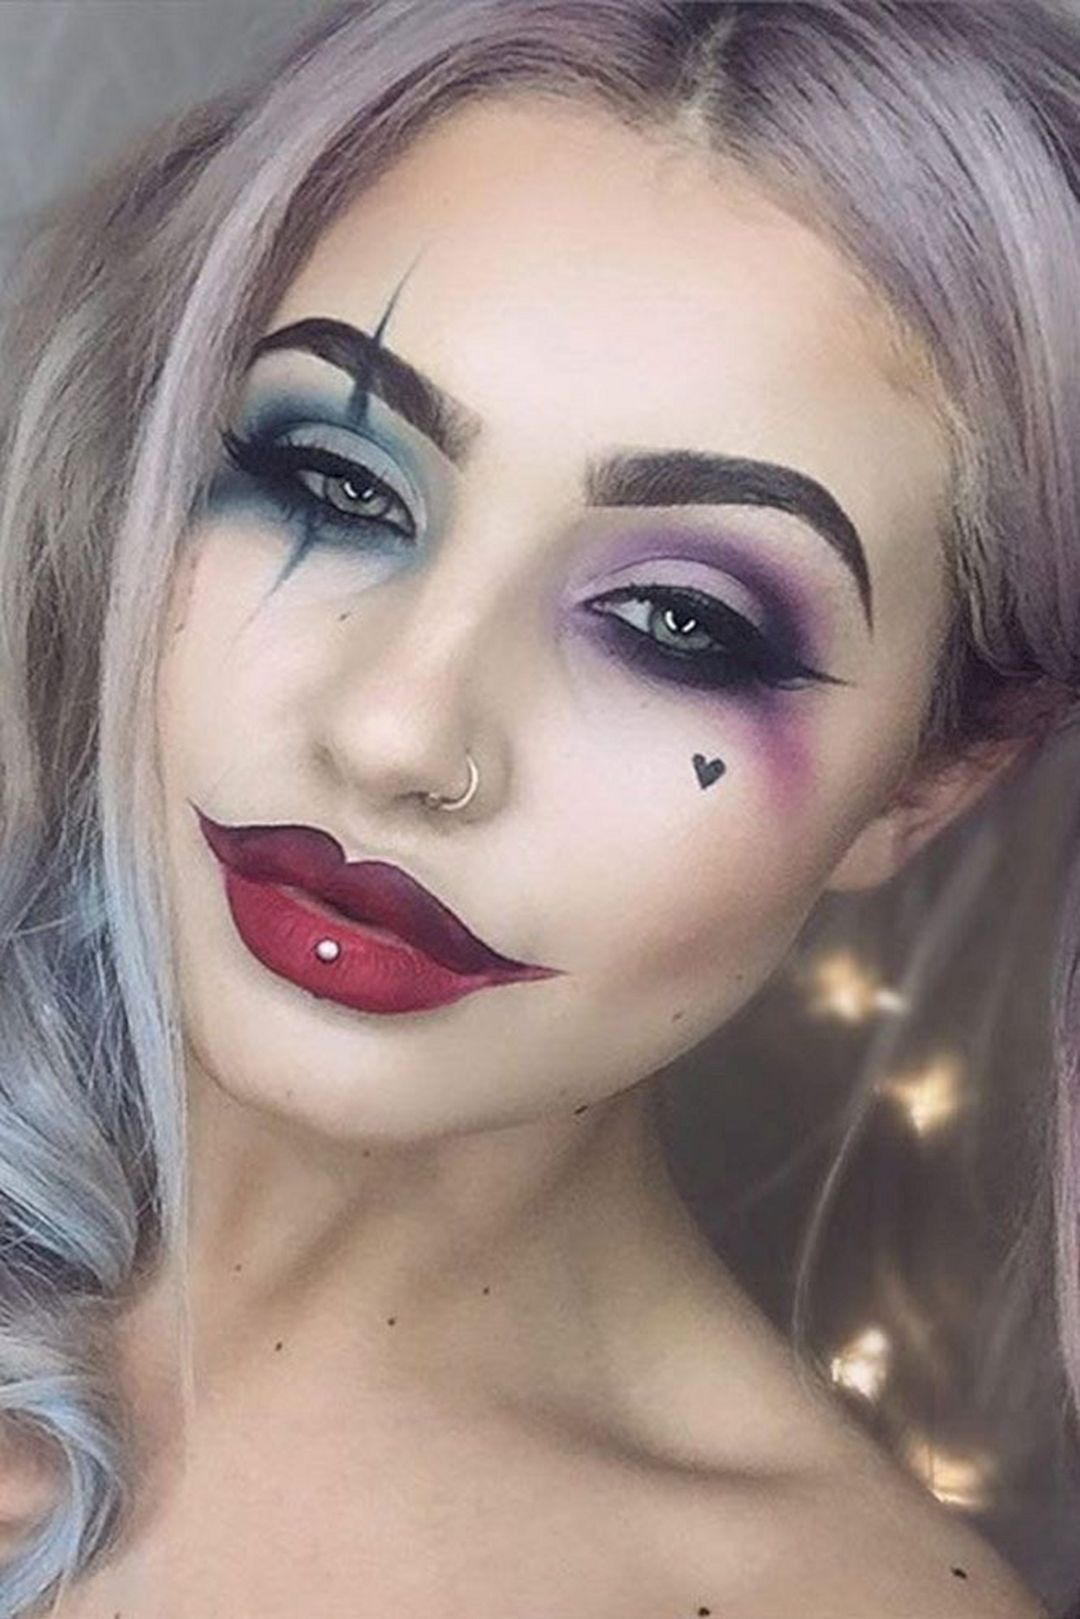 17 Marvelous Women Makeup Ideas To Welcome the Halloween Celebration